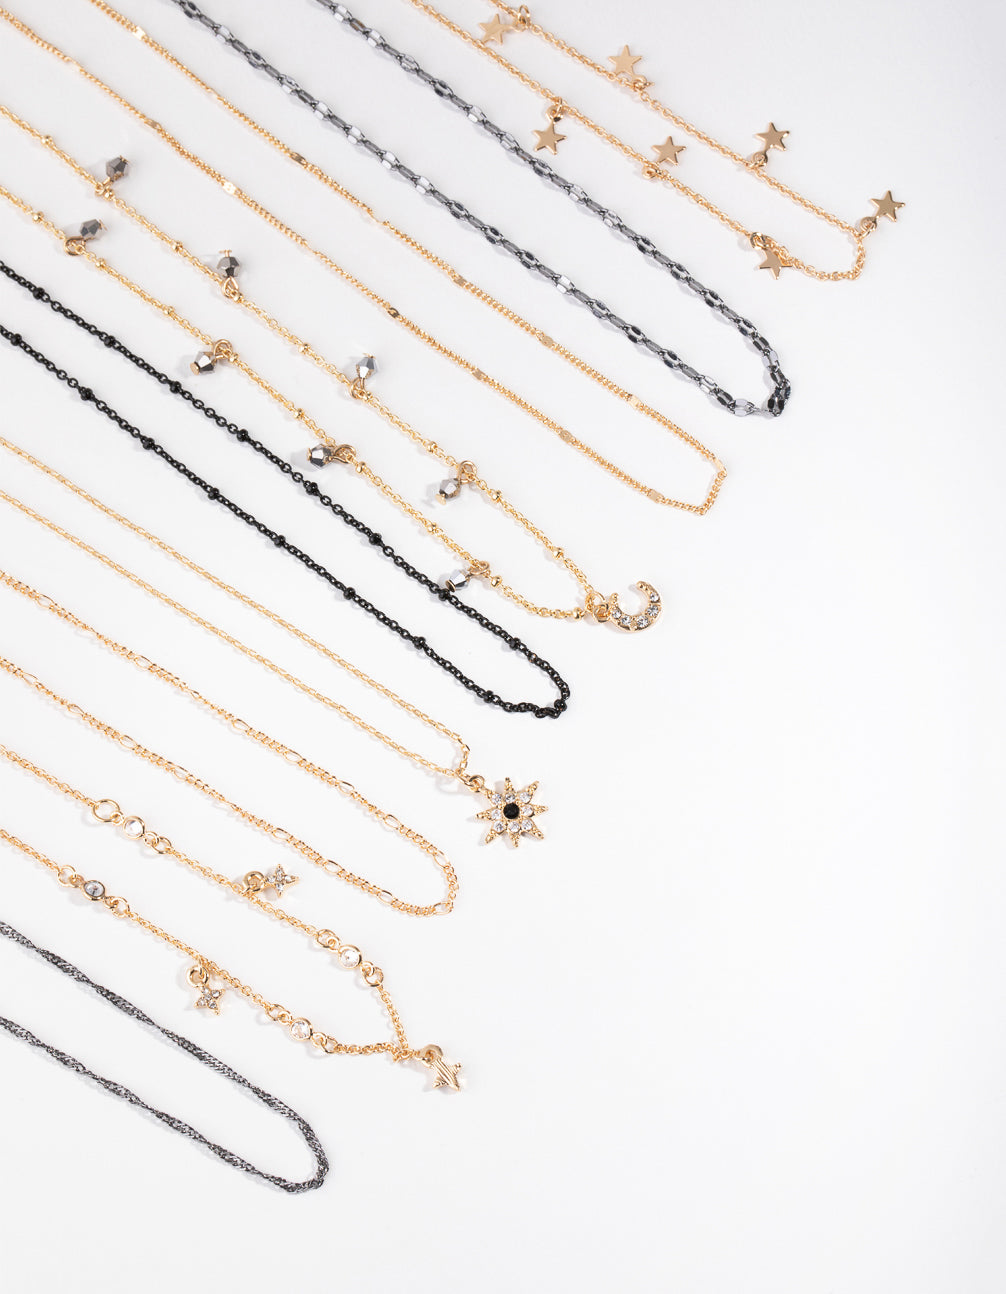 Mixed Metals Celestial 9-pack Choker Necklace